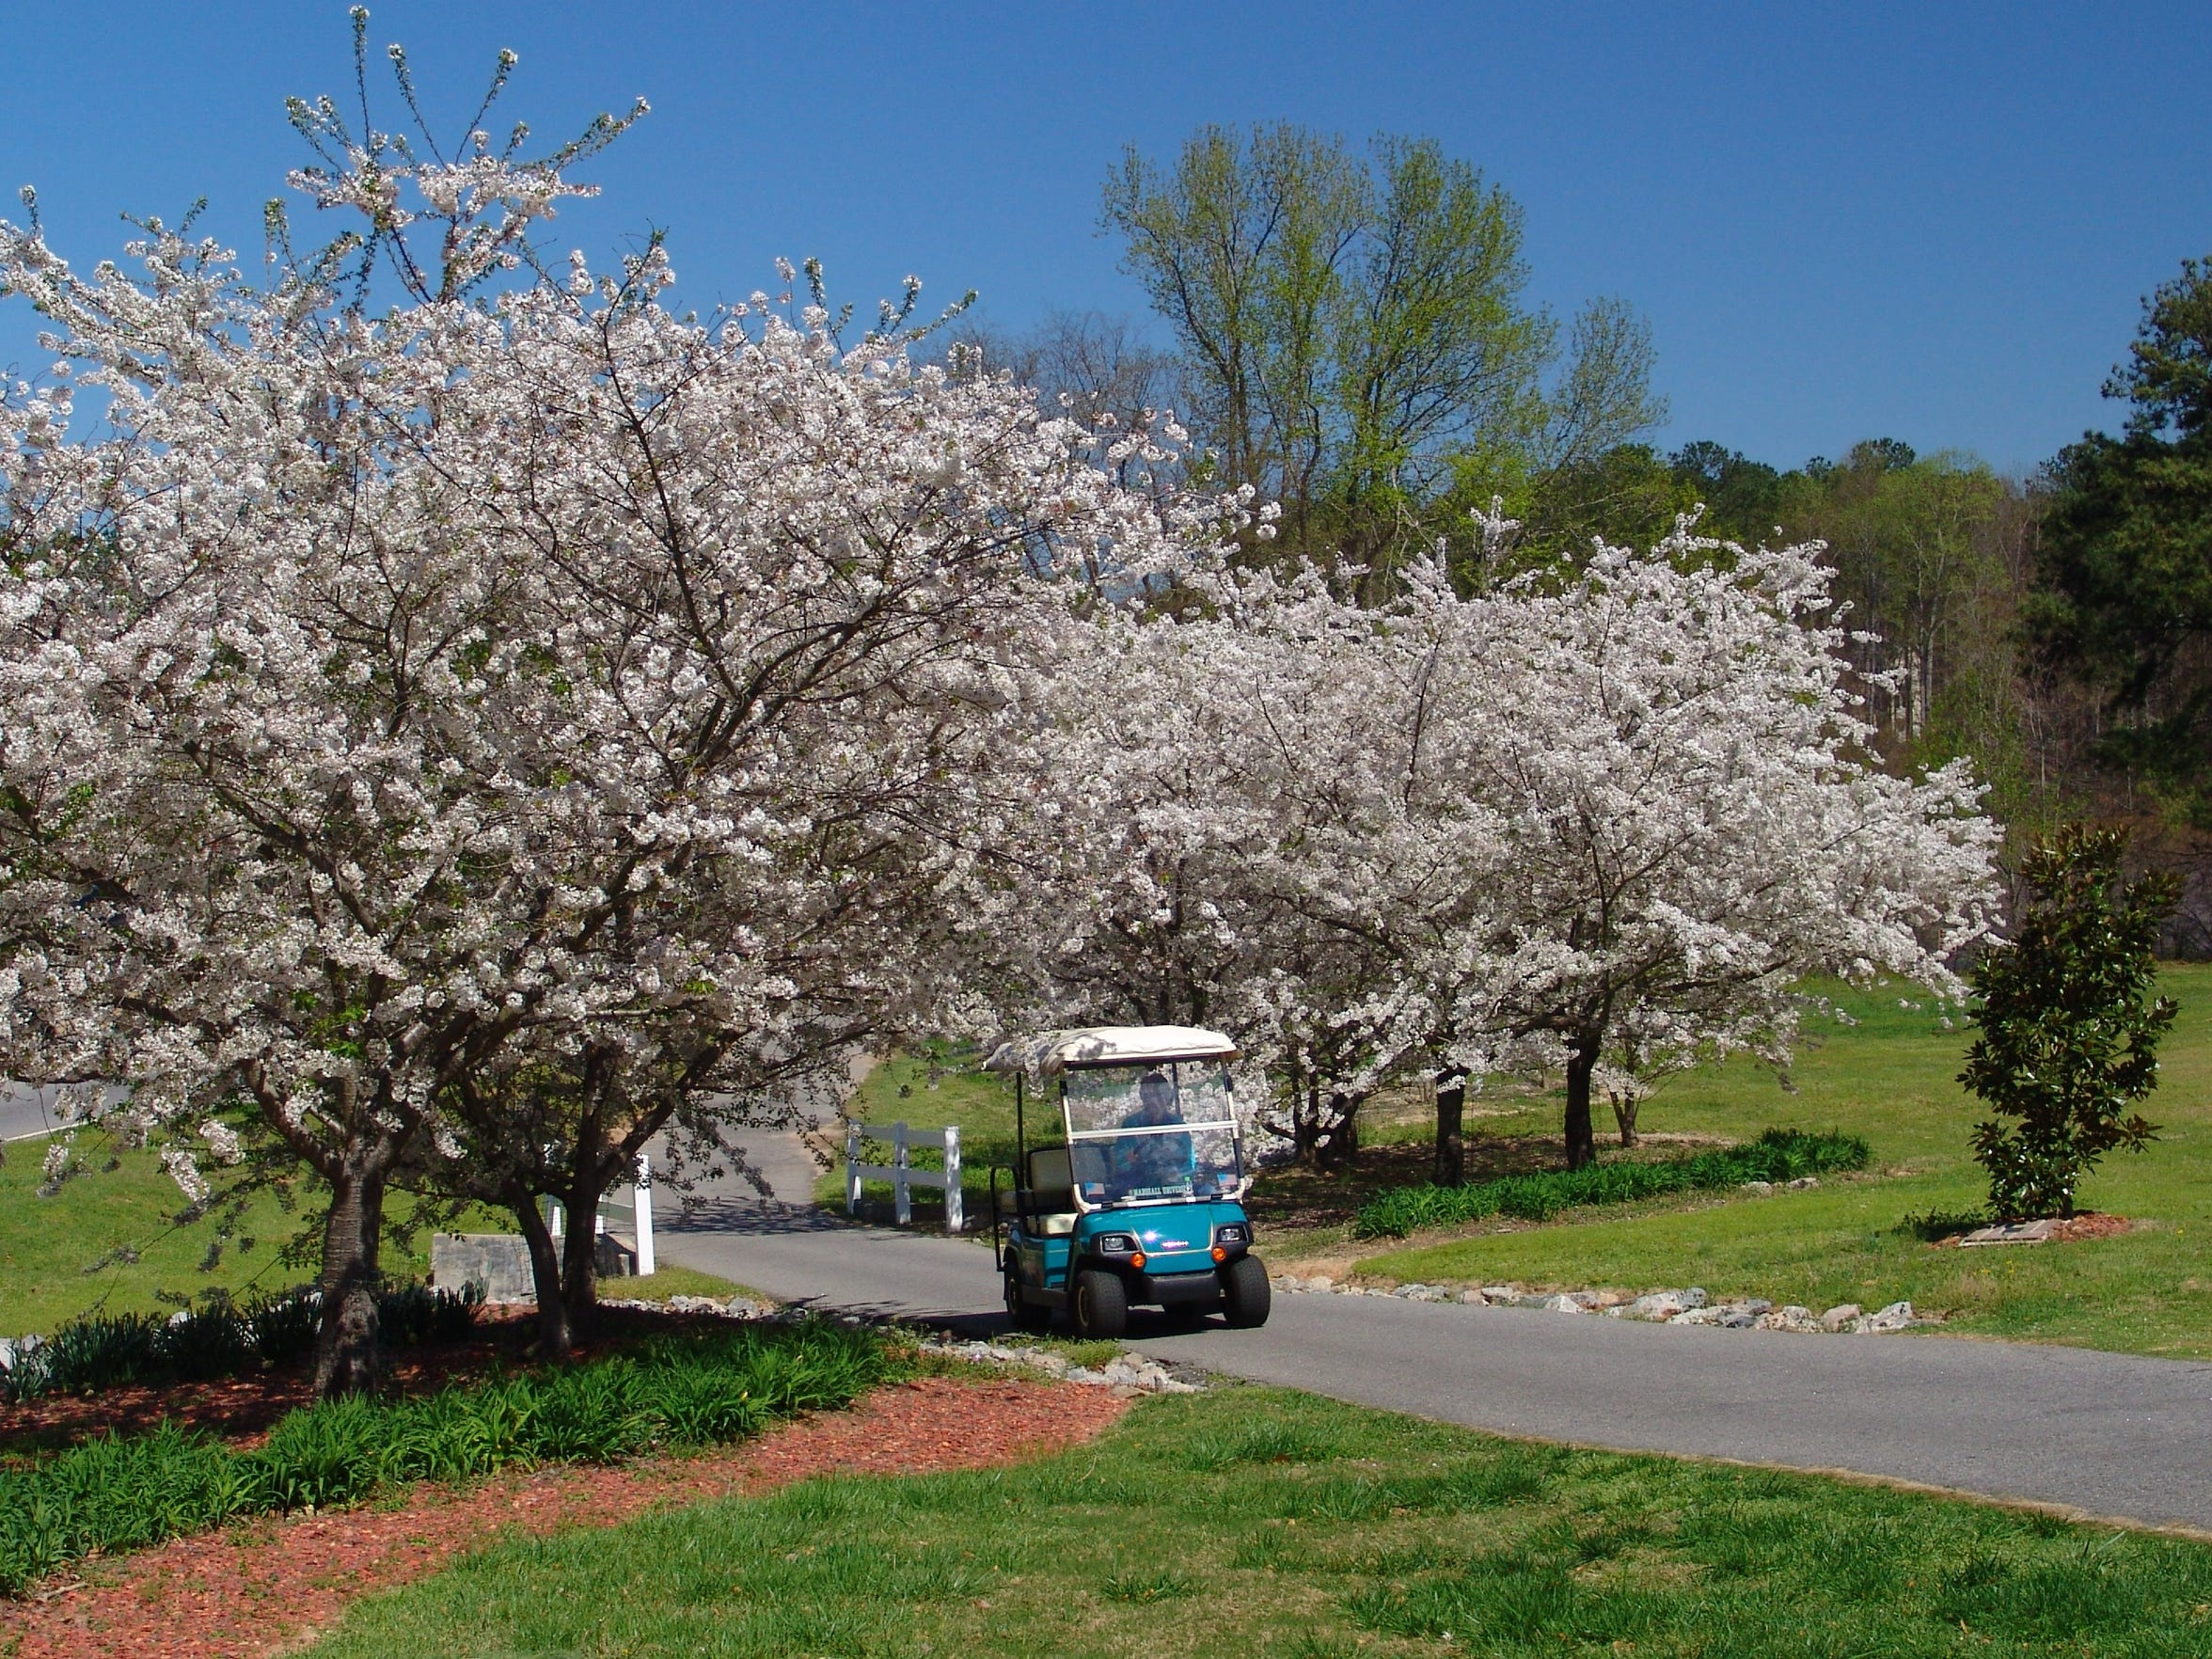 The network of roughly 100 miles of multi-use trails that runs through Peachtree City, Georgia, is made for walking, cycling and golf carts.